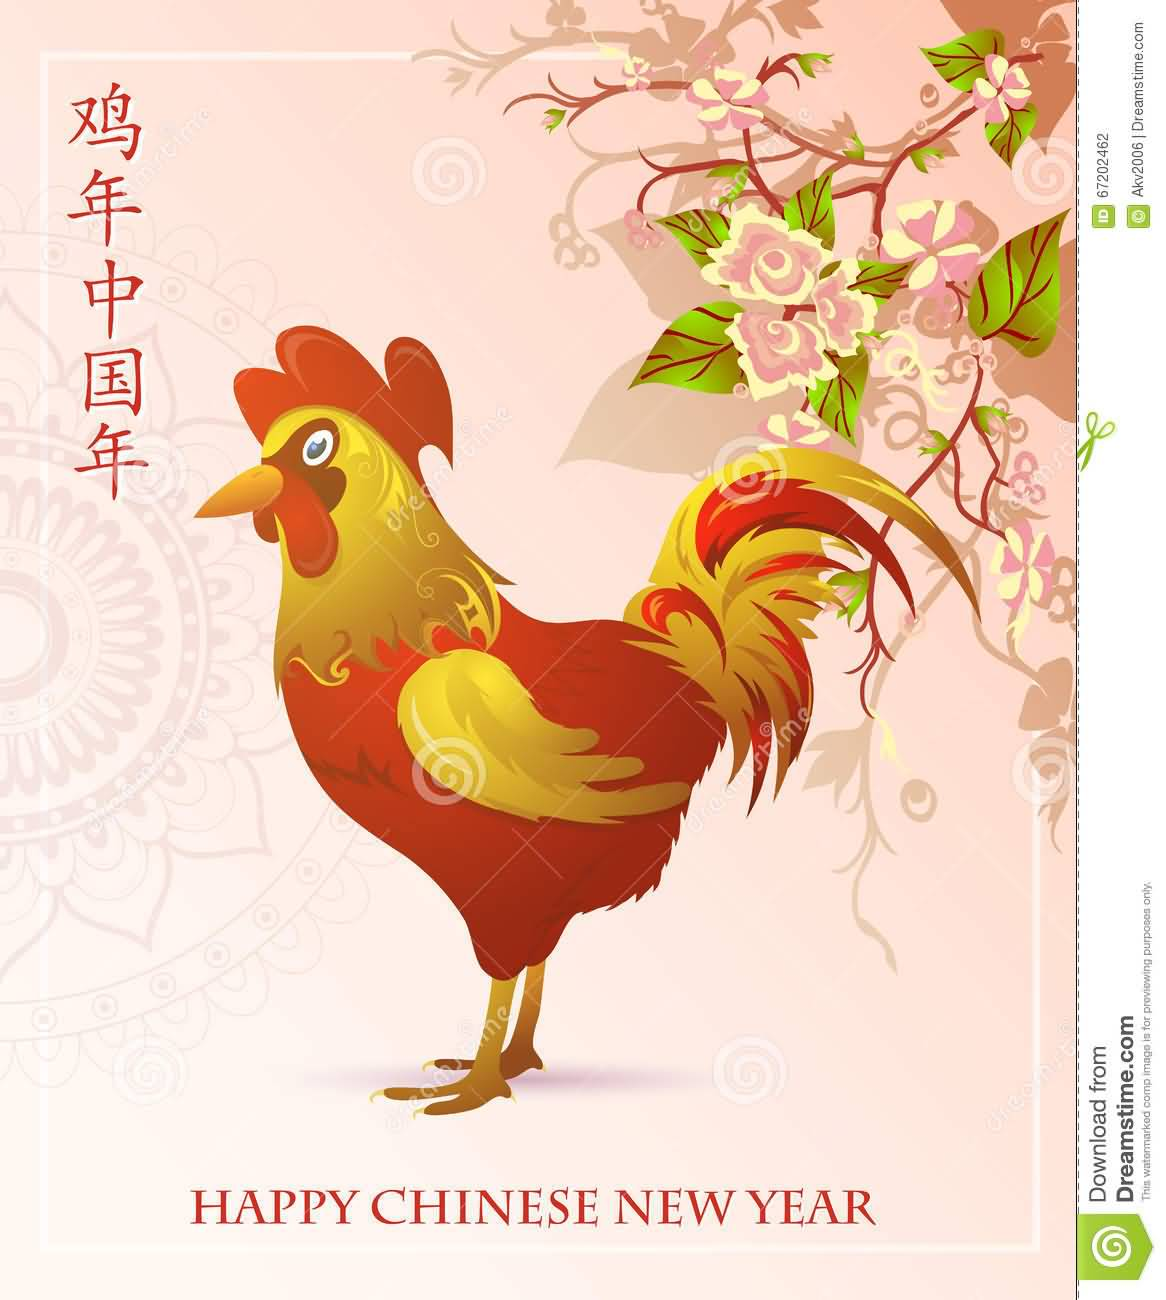 Happy Chinese New Year Wishes Card Image